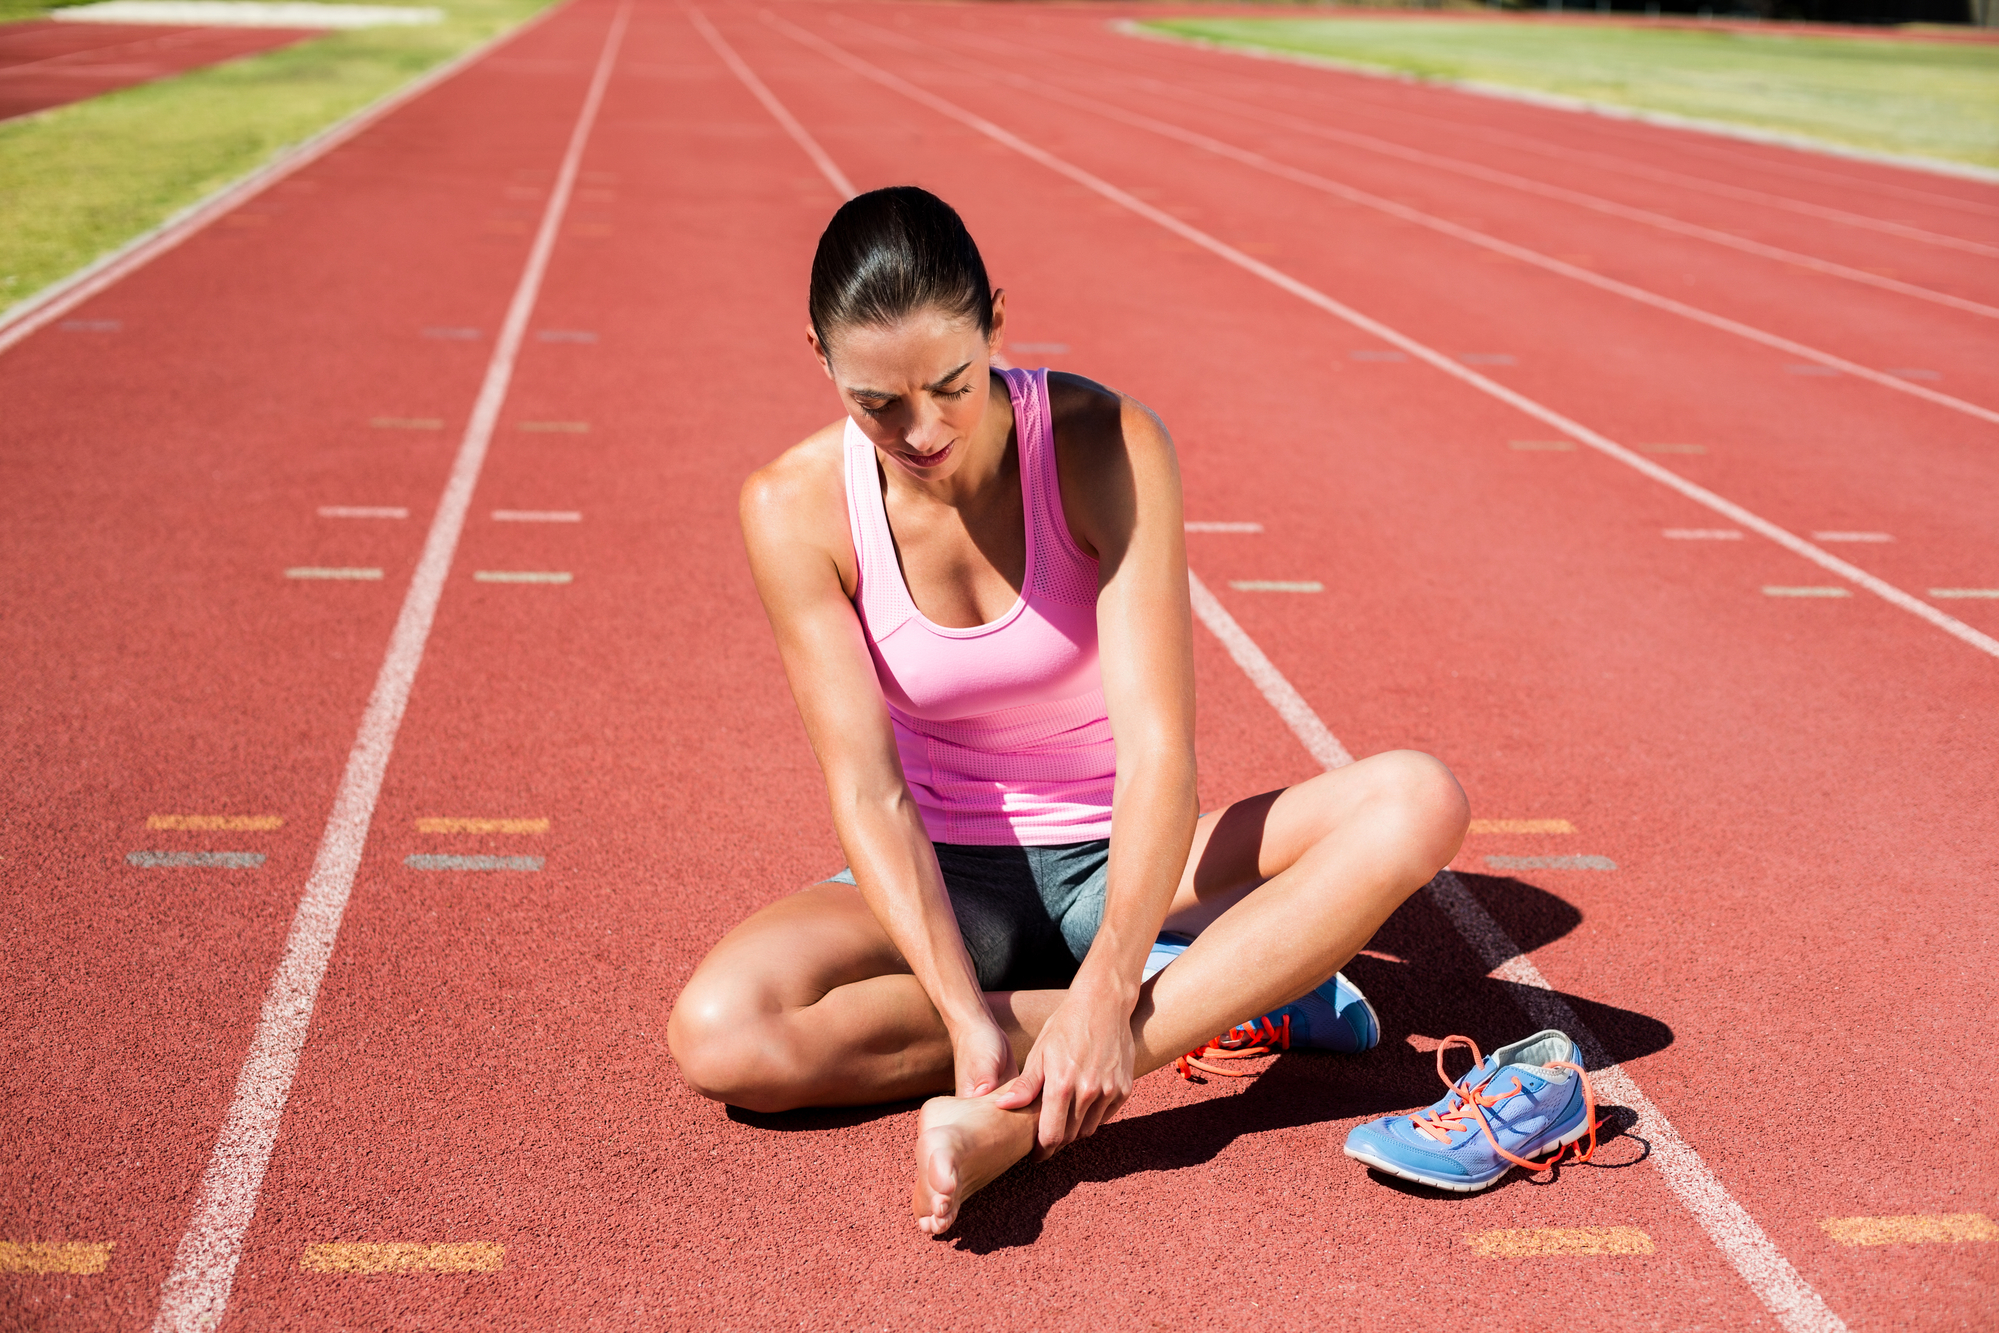 Female athlete with foot pain on running track on a sunny day.